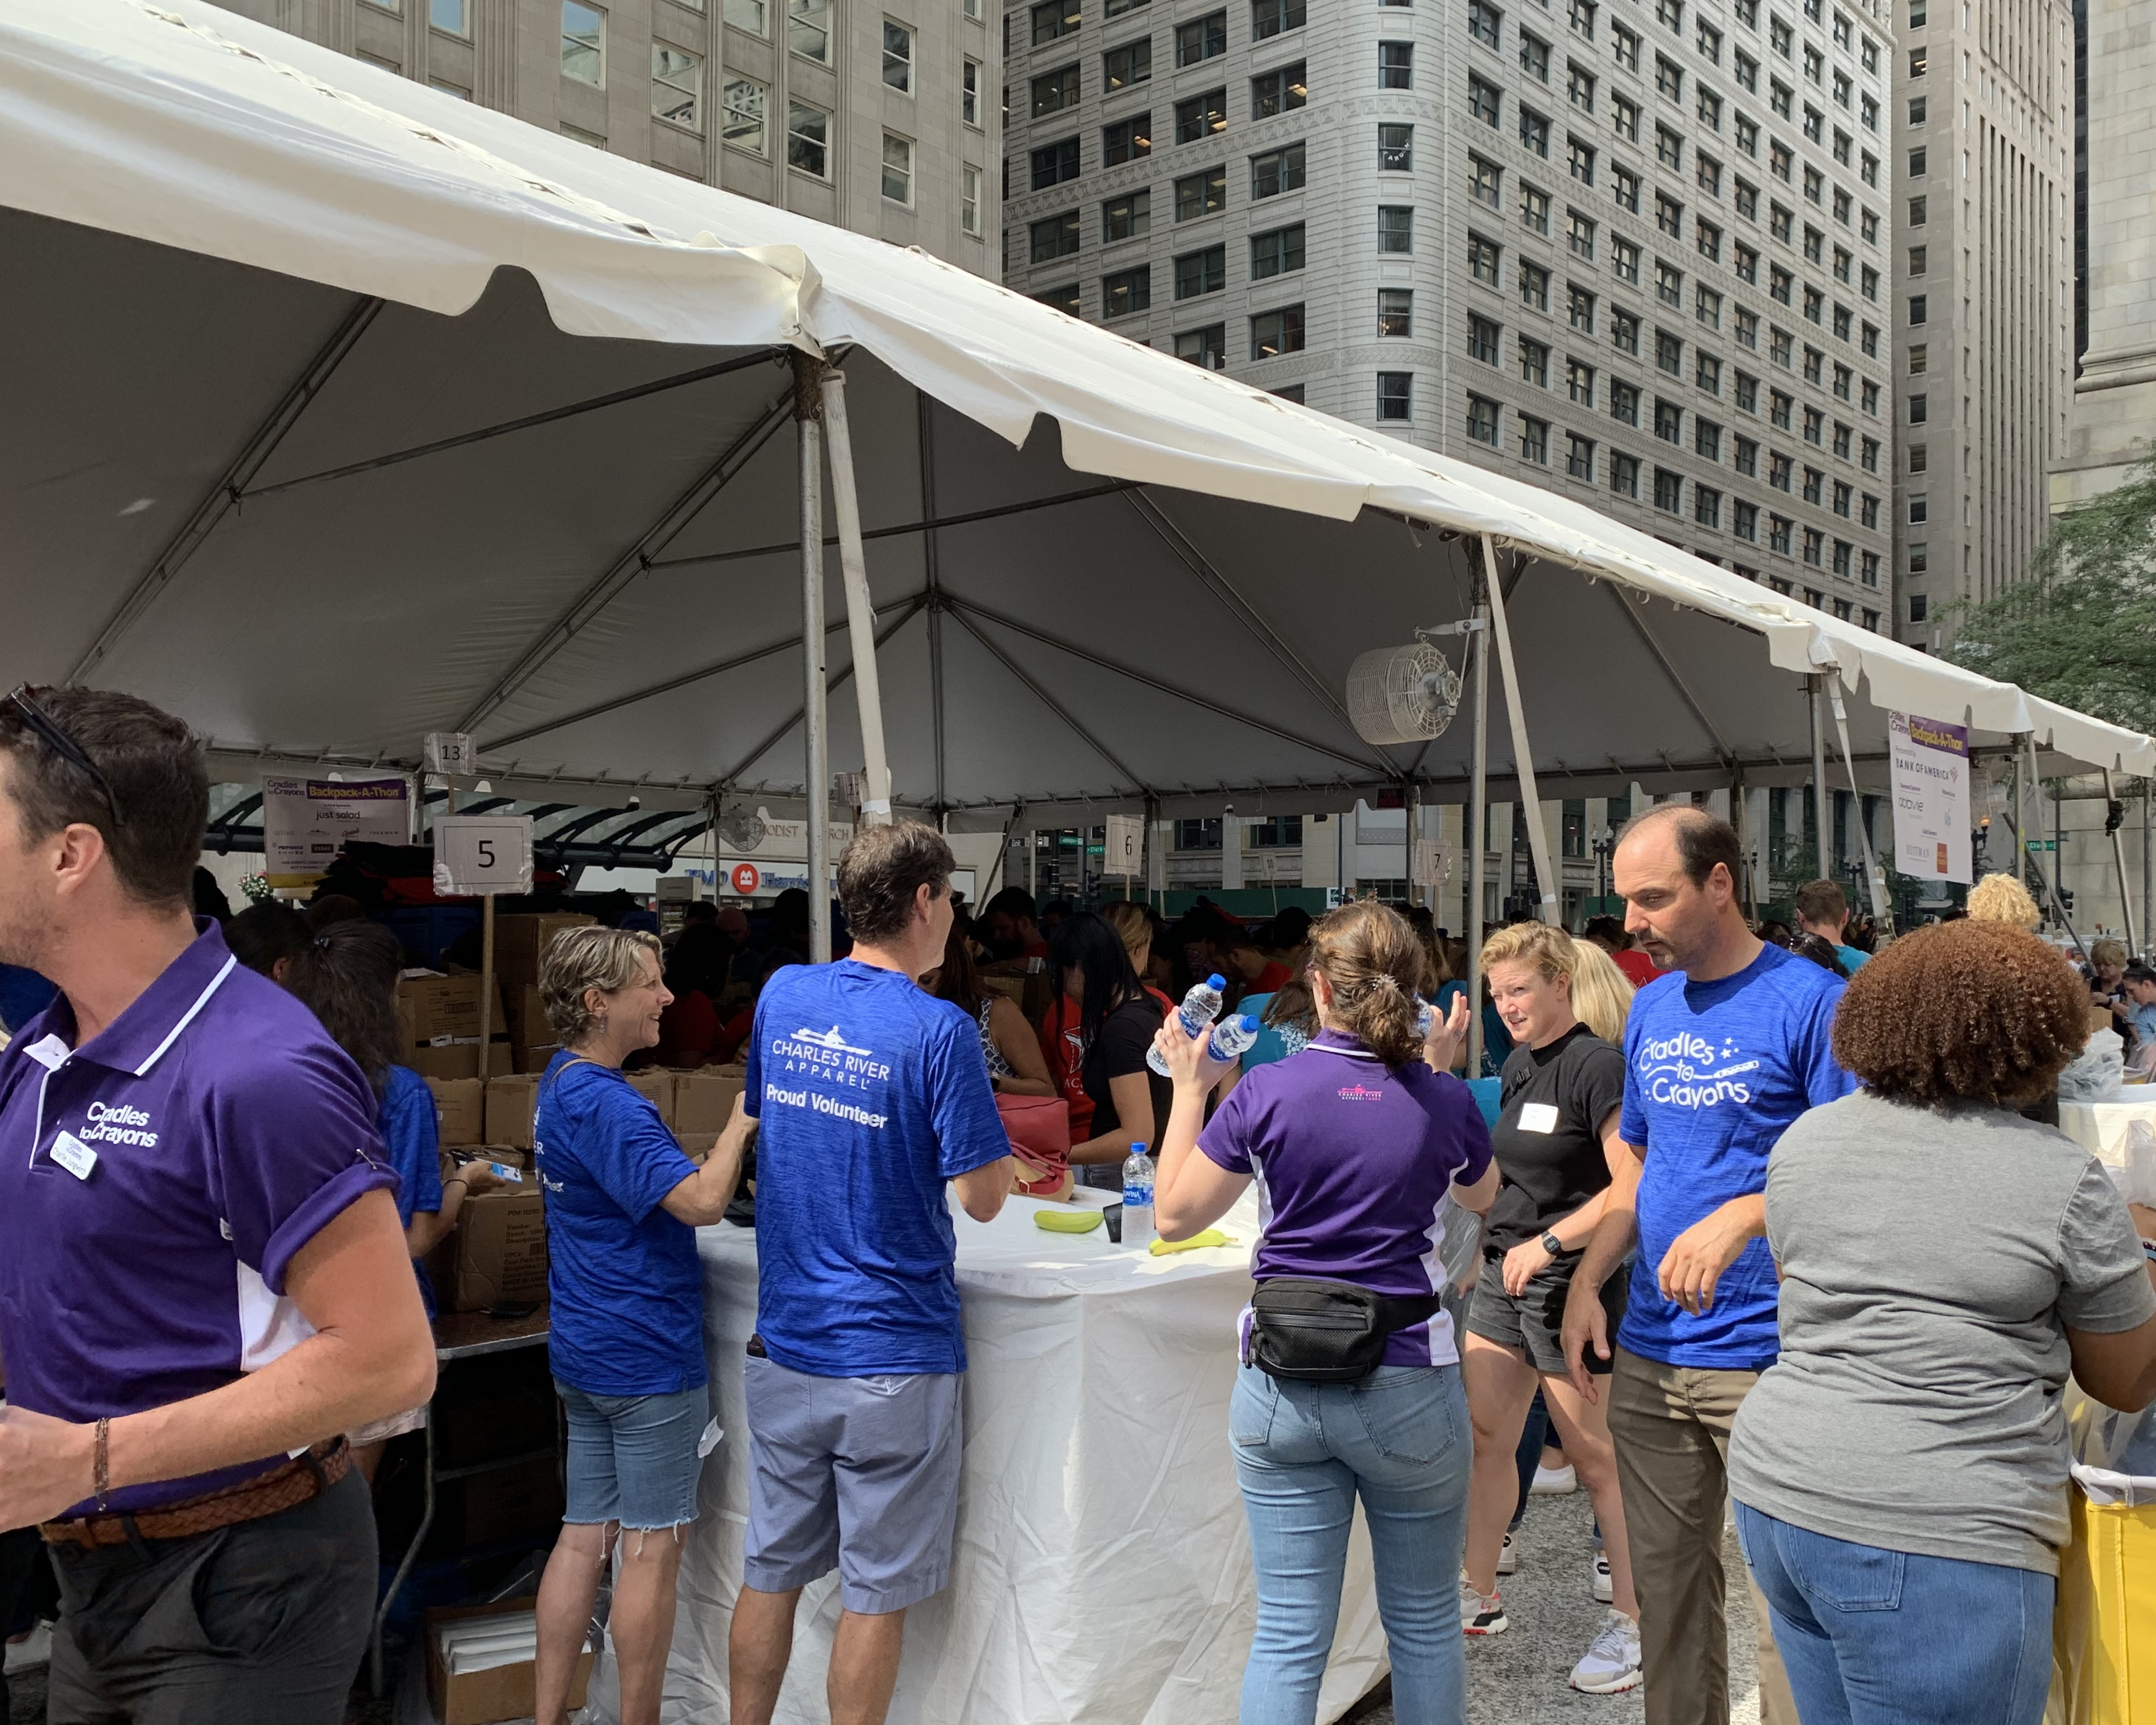 Volunteers participate in the fourth annual Backpack-a-Thon, organized by Cradles to Crayons and in partnership with Bank of America, the company with the greatest volunteer turnout.